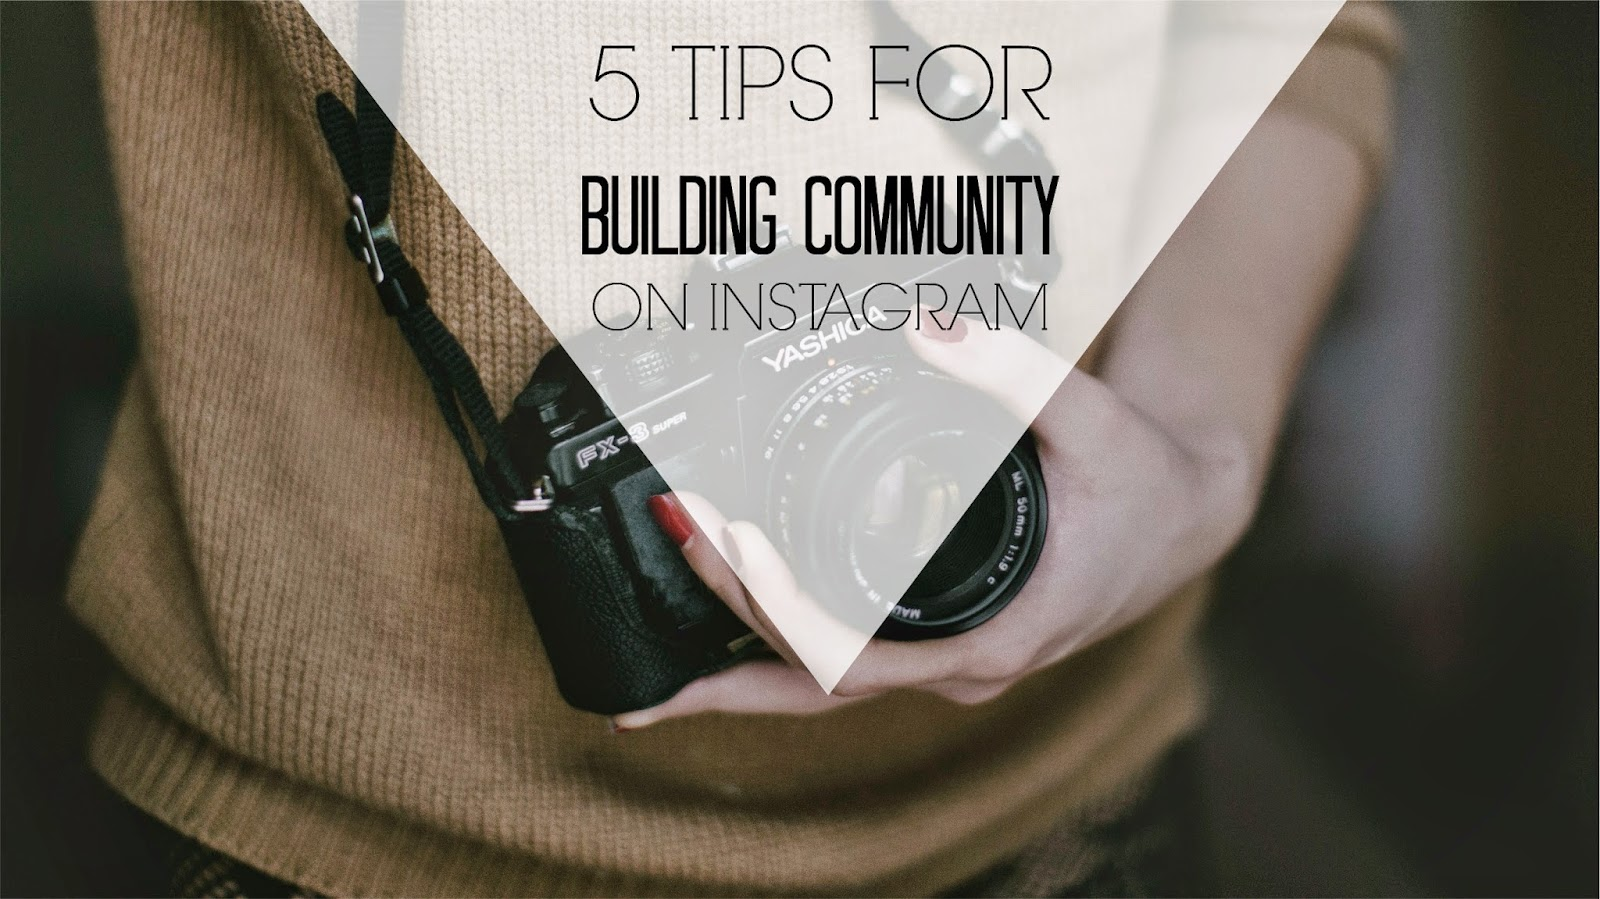 Building community on Instagram